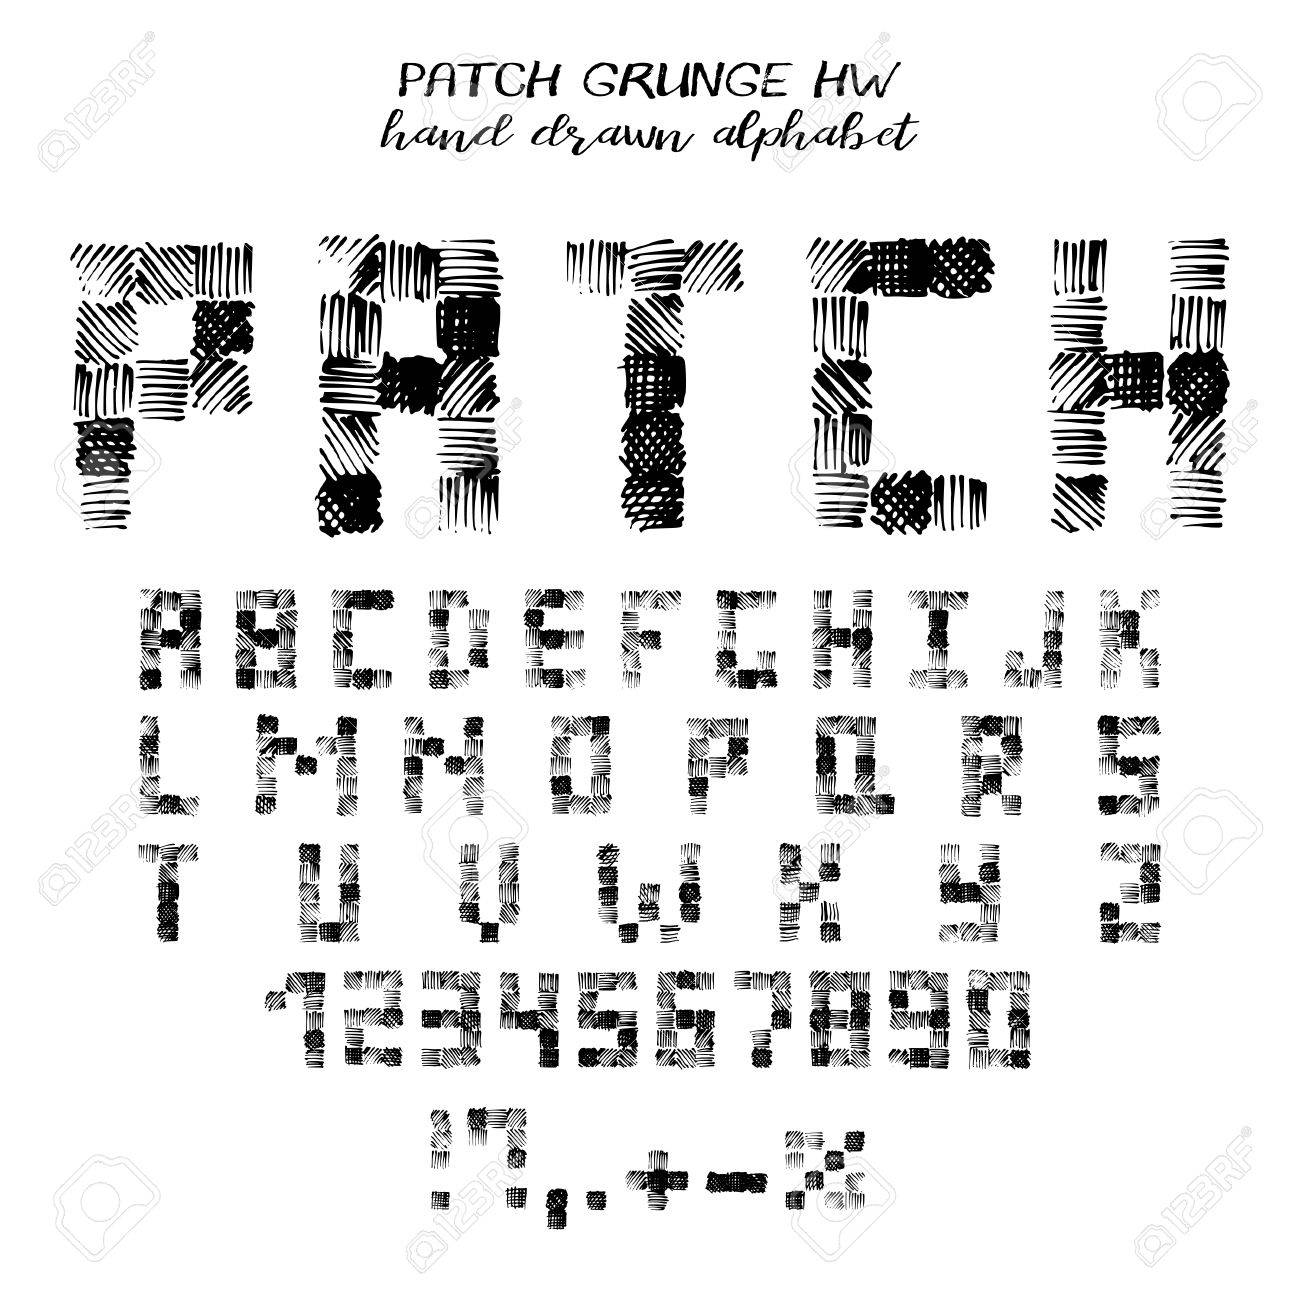 Hand Drawn Alphabet Written Grunge Font With Symbols In Style